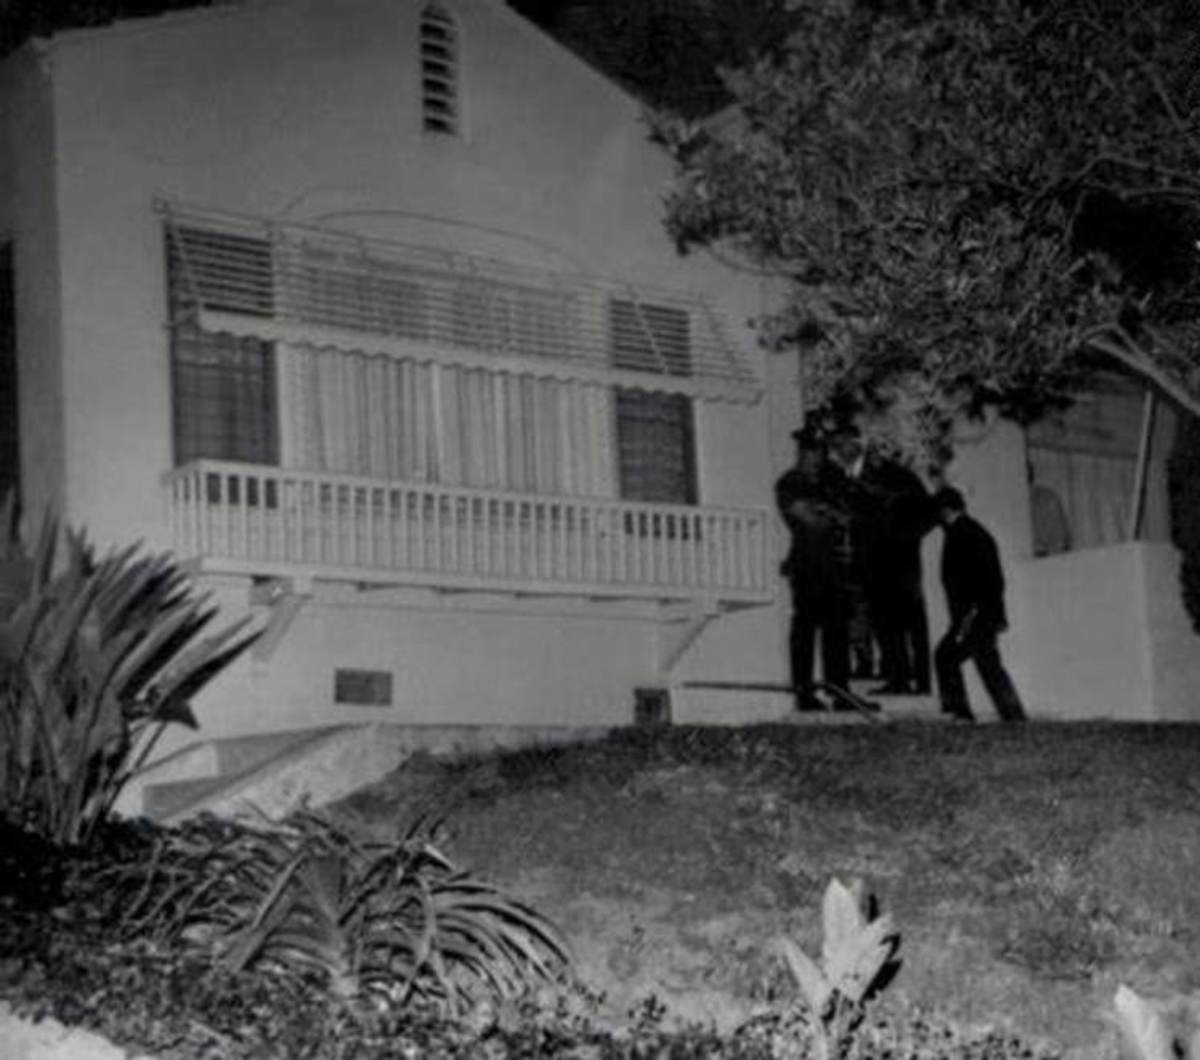 Detectives gather outside the LaBianca residence at 3301 Waverly Drive, in the early morning hours of August 10, 1969.